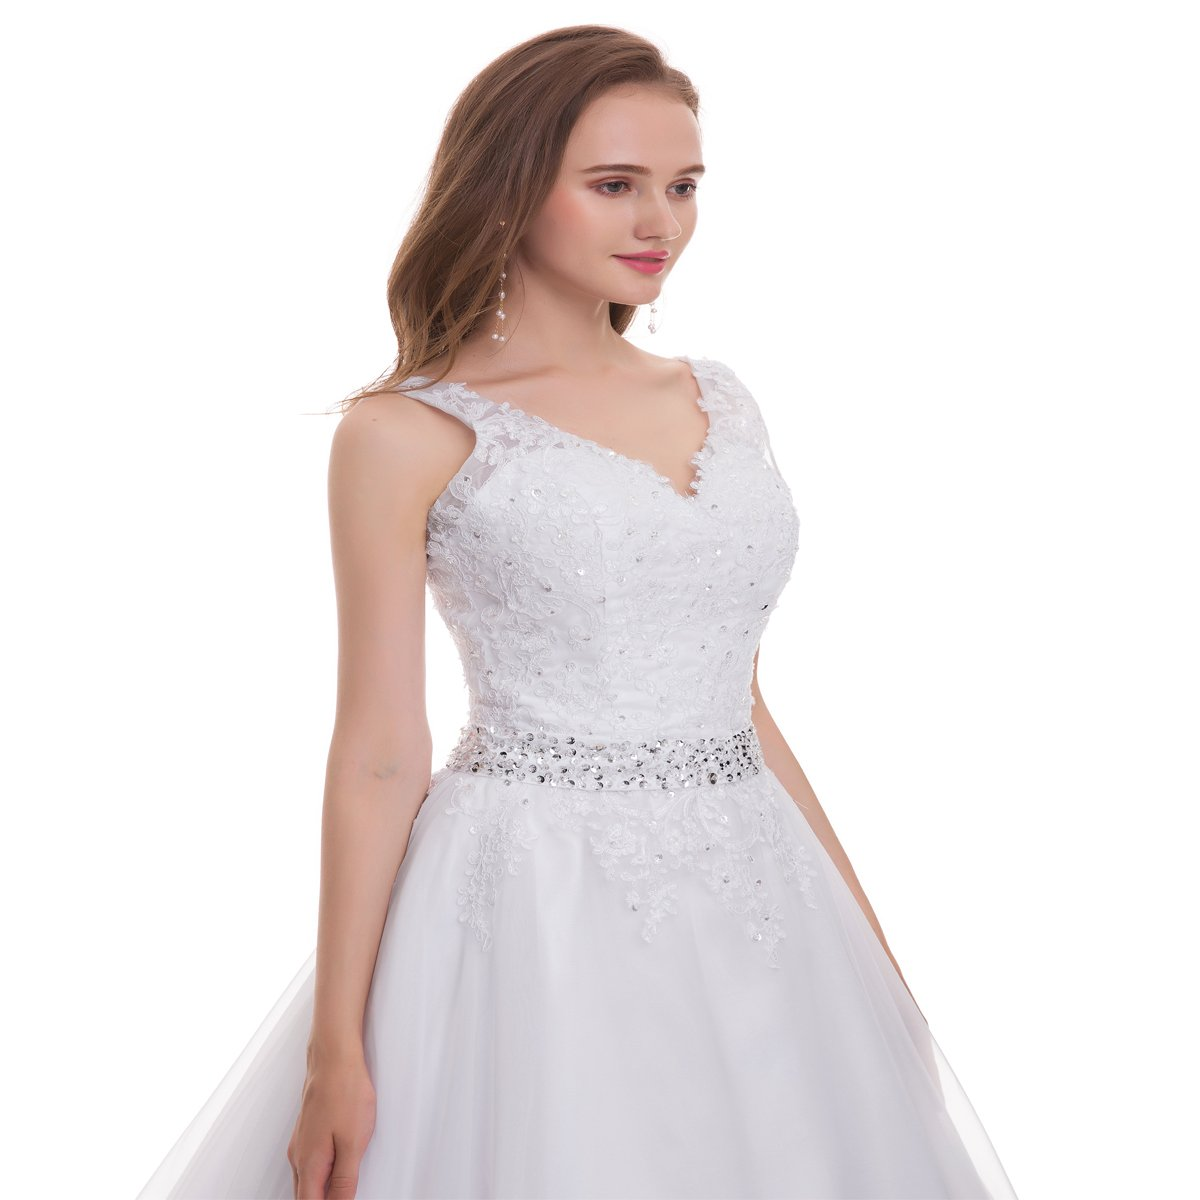 ed96b66c976b OWMAN Women's Double V-Neck Lace Applique Empire Chapel Train Wedding Dress  at Amazon Women's Clothing store: